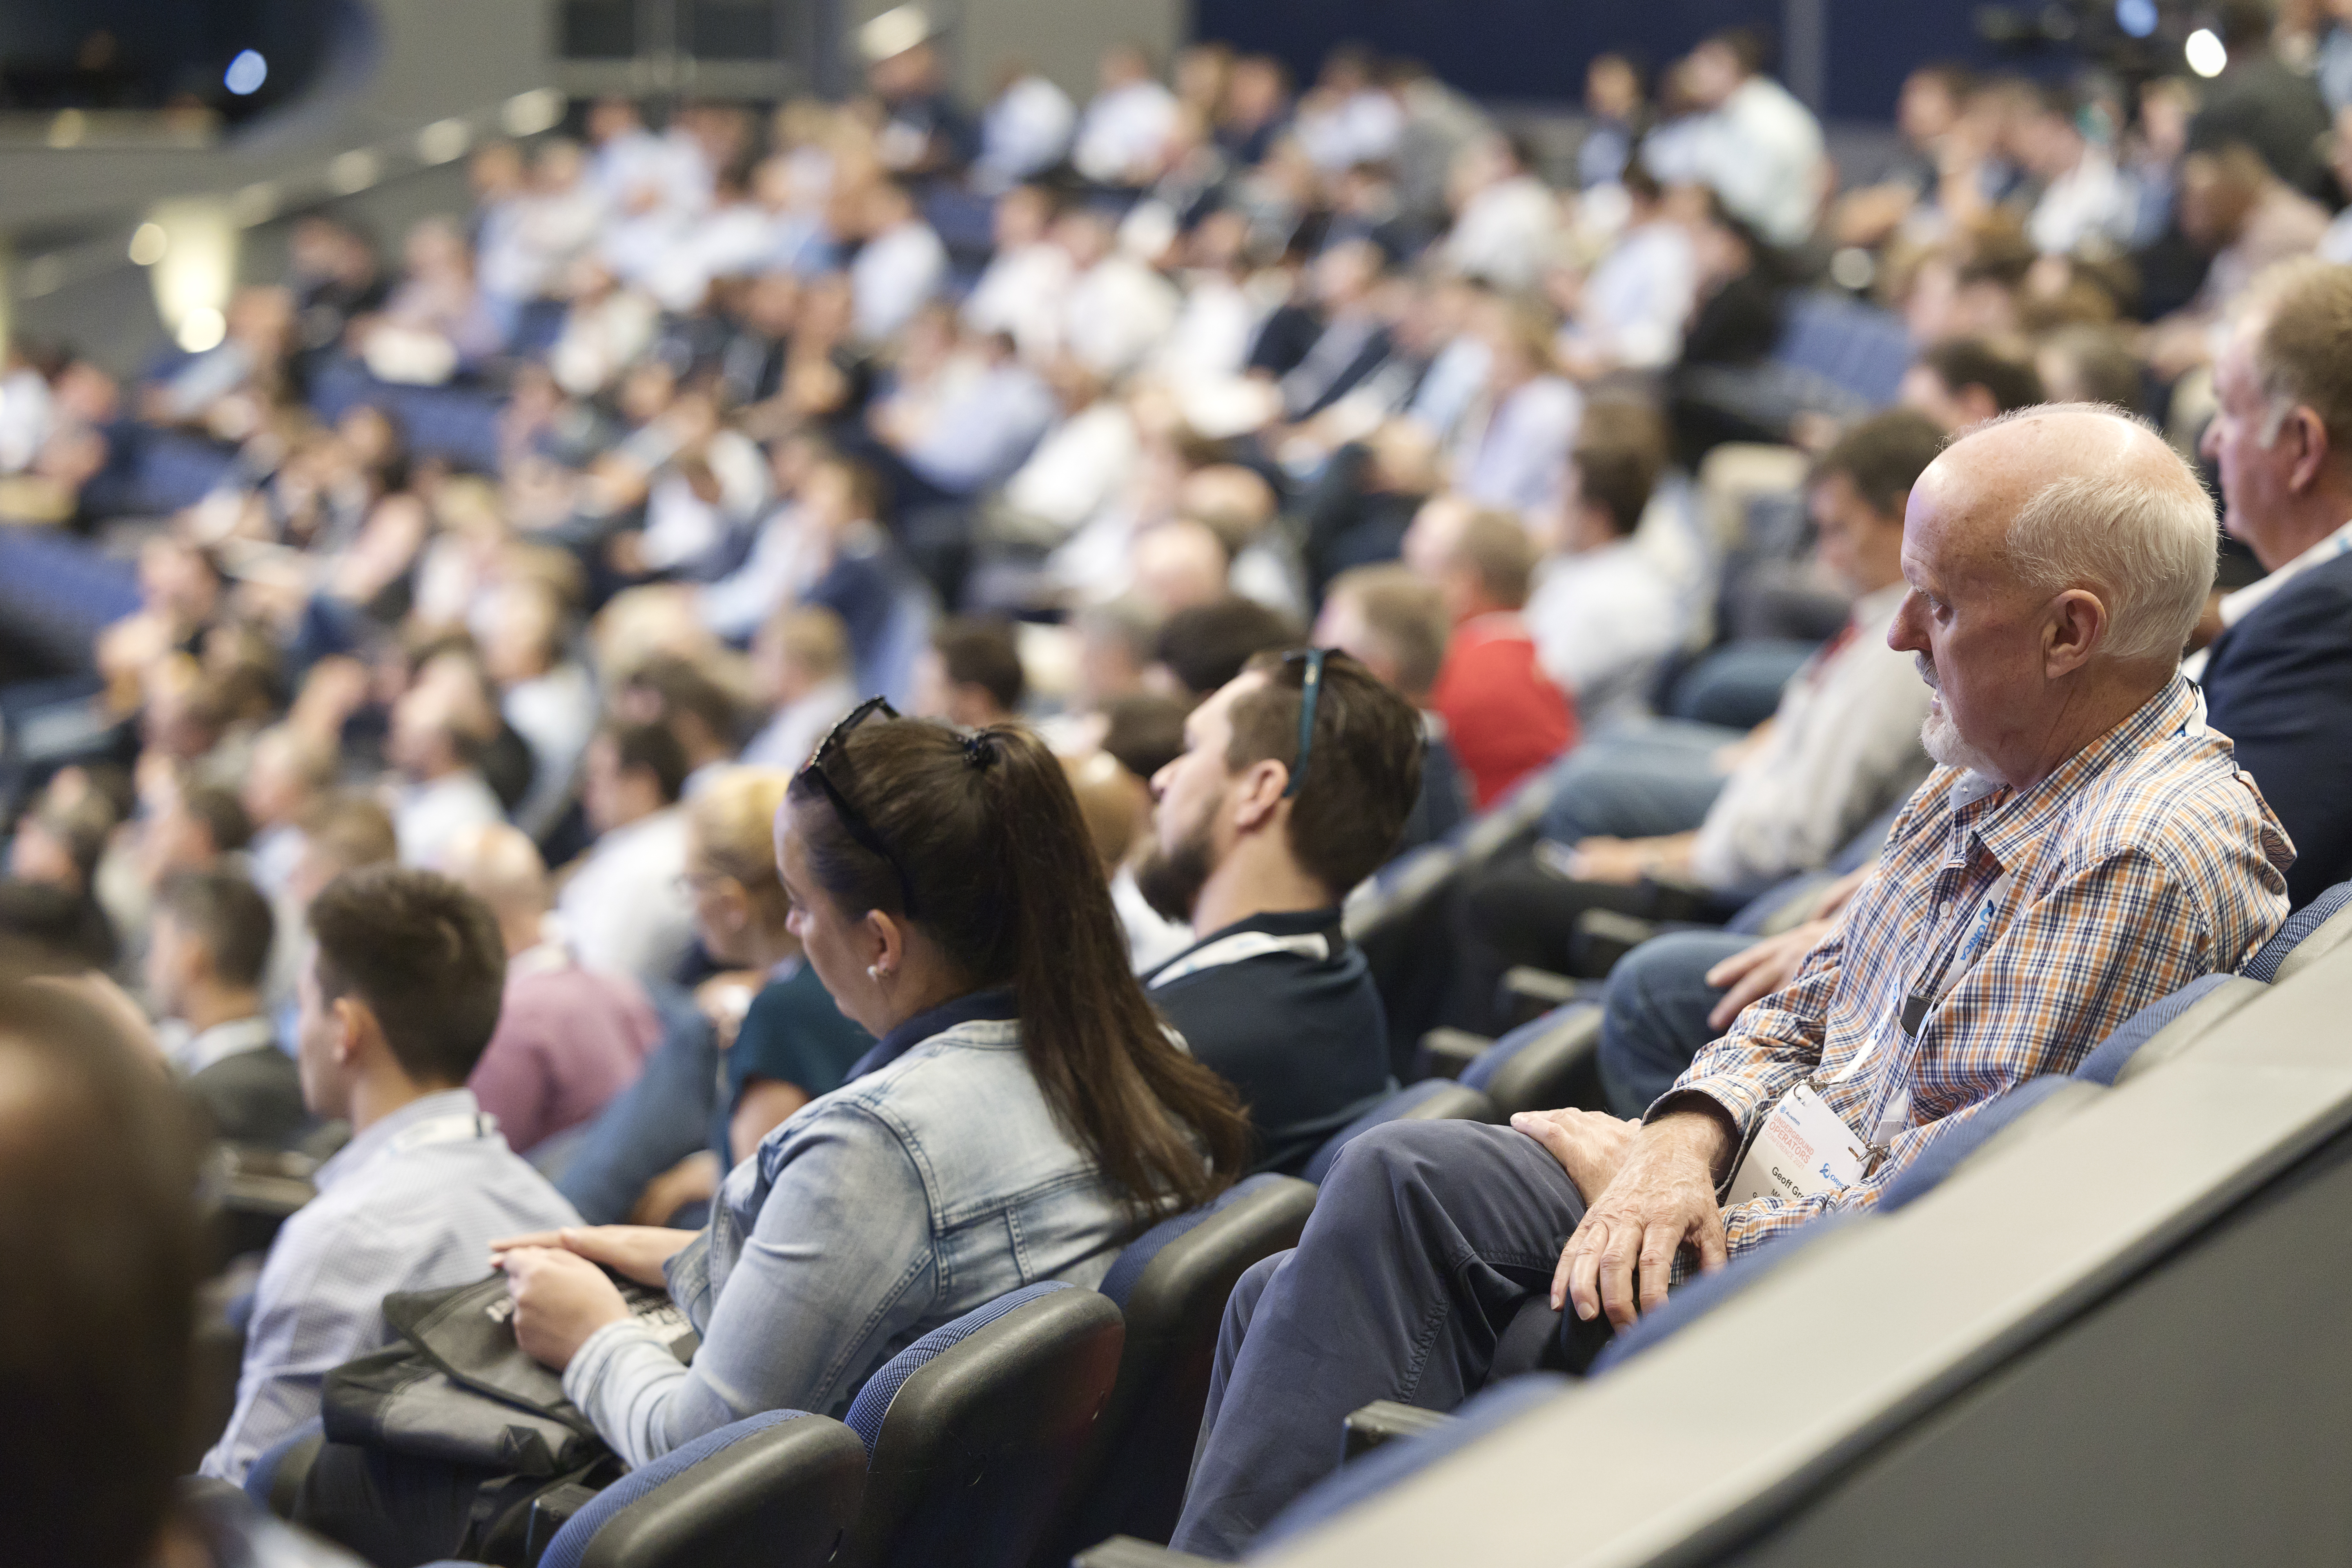 Leading neuromuscular congress to return to Western Australia in 2024